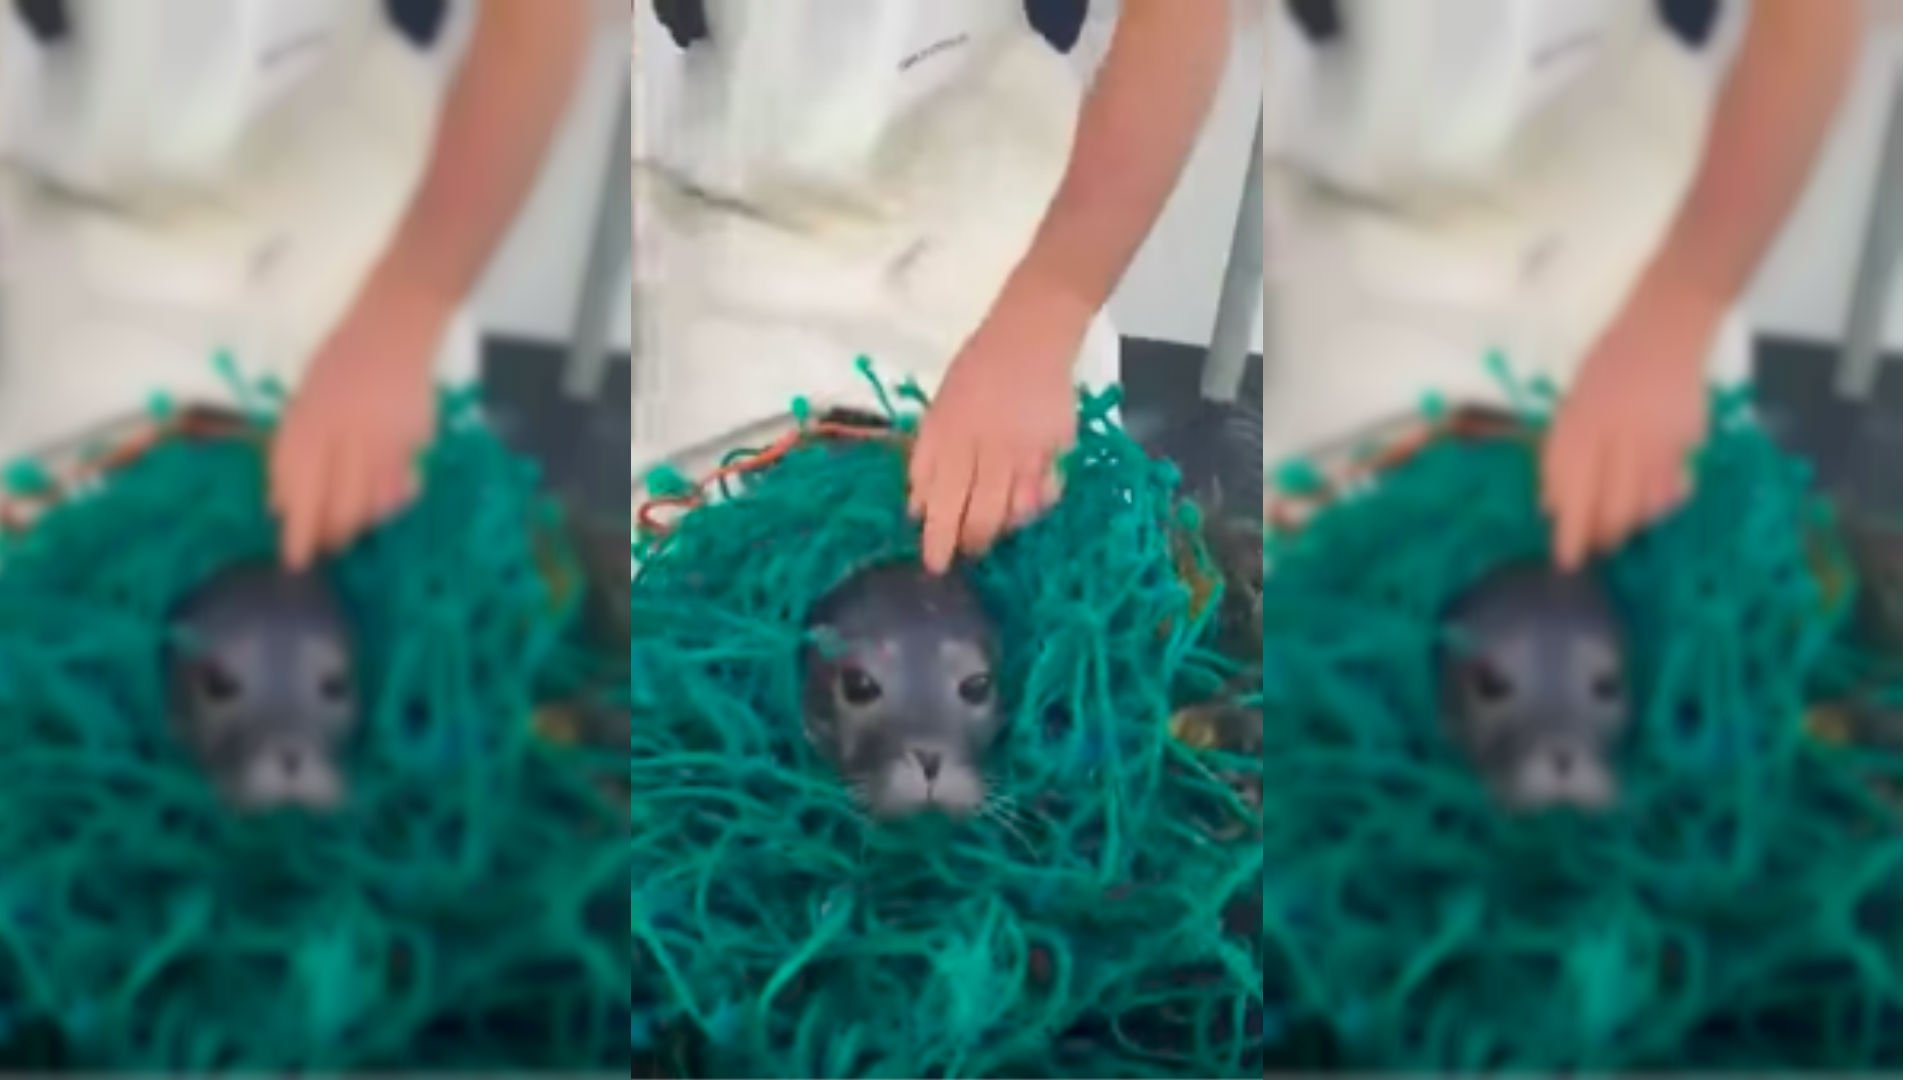 Hero fishermen rescue seal trapped in net https://t.co/dib5nlp6e6 https://t.co/HFVLCbcqU8